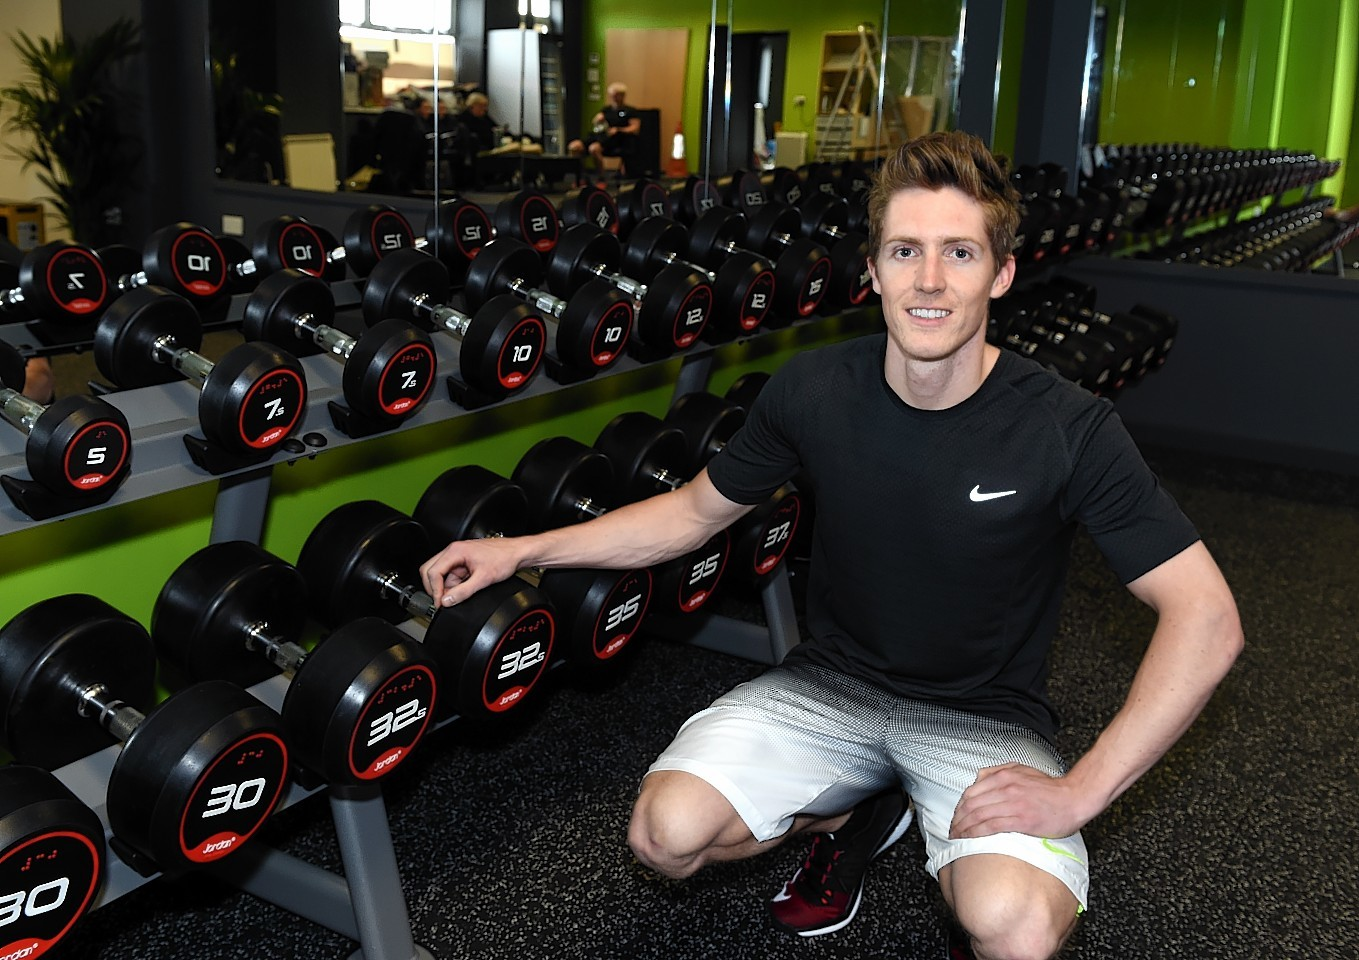 Ben Kilner by the weights section of The Unit